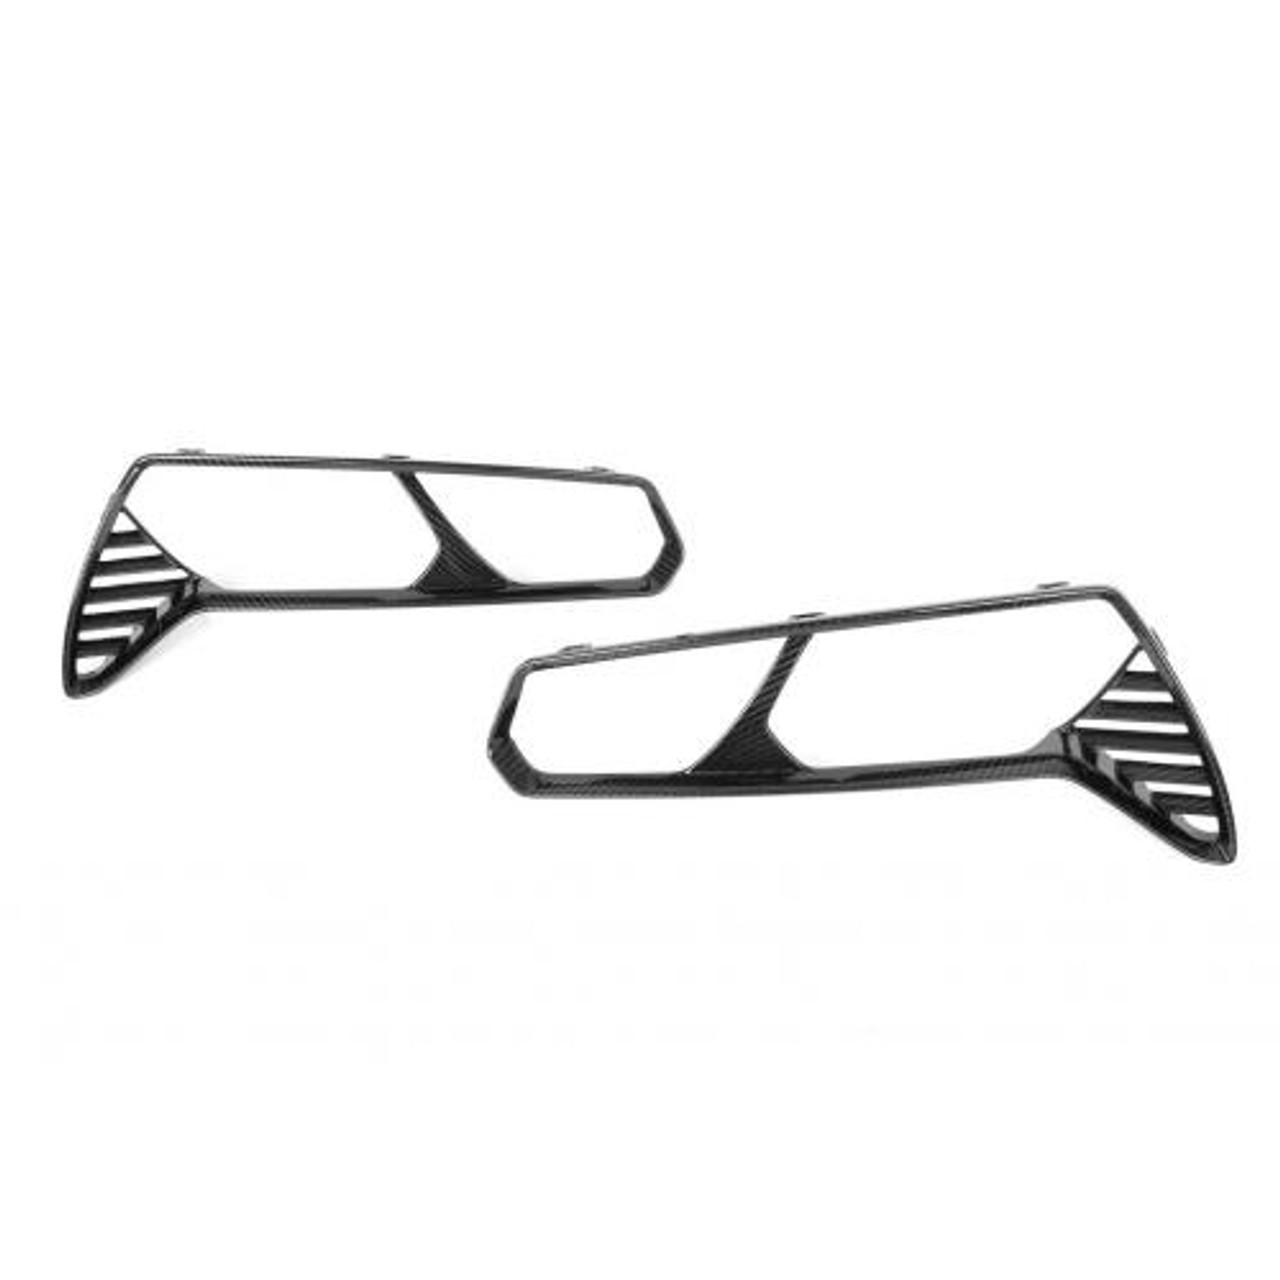 CARBON FIBER TAIL LIGHT BEZELS